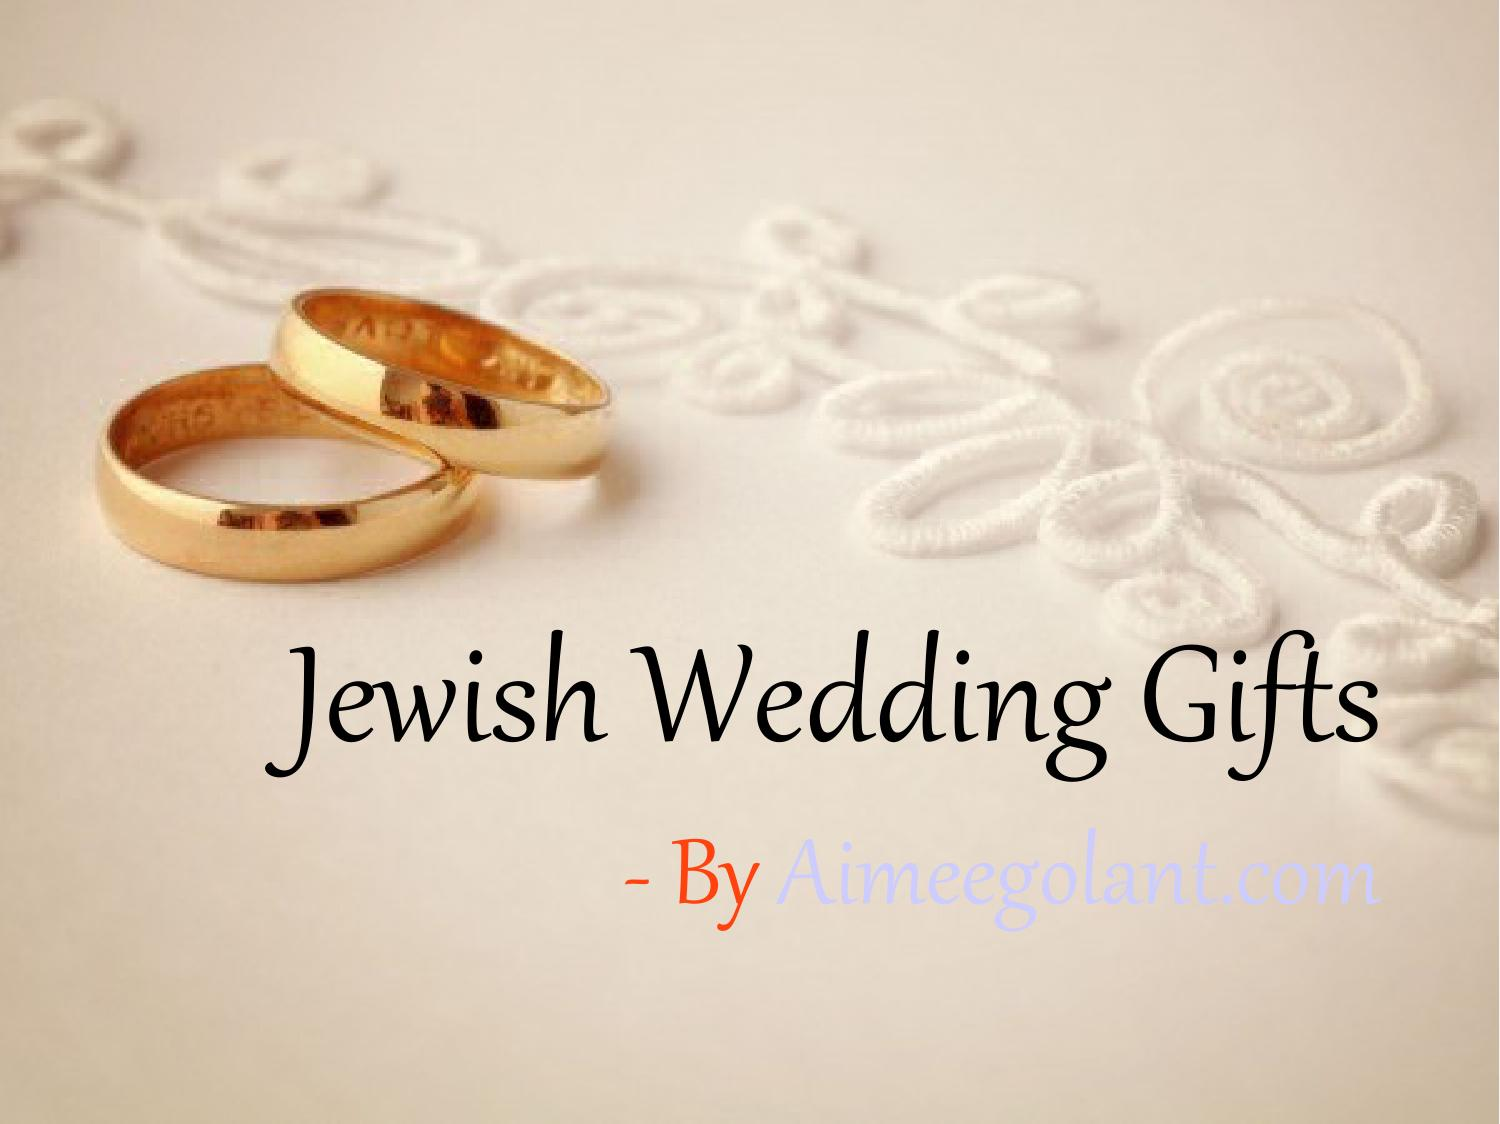 Jewish Wedding Gift: Finding Out The Most Appropriate Jewish Wedding Gifts By